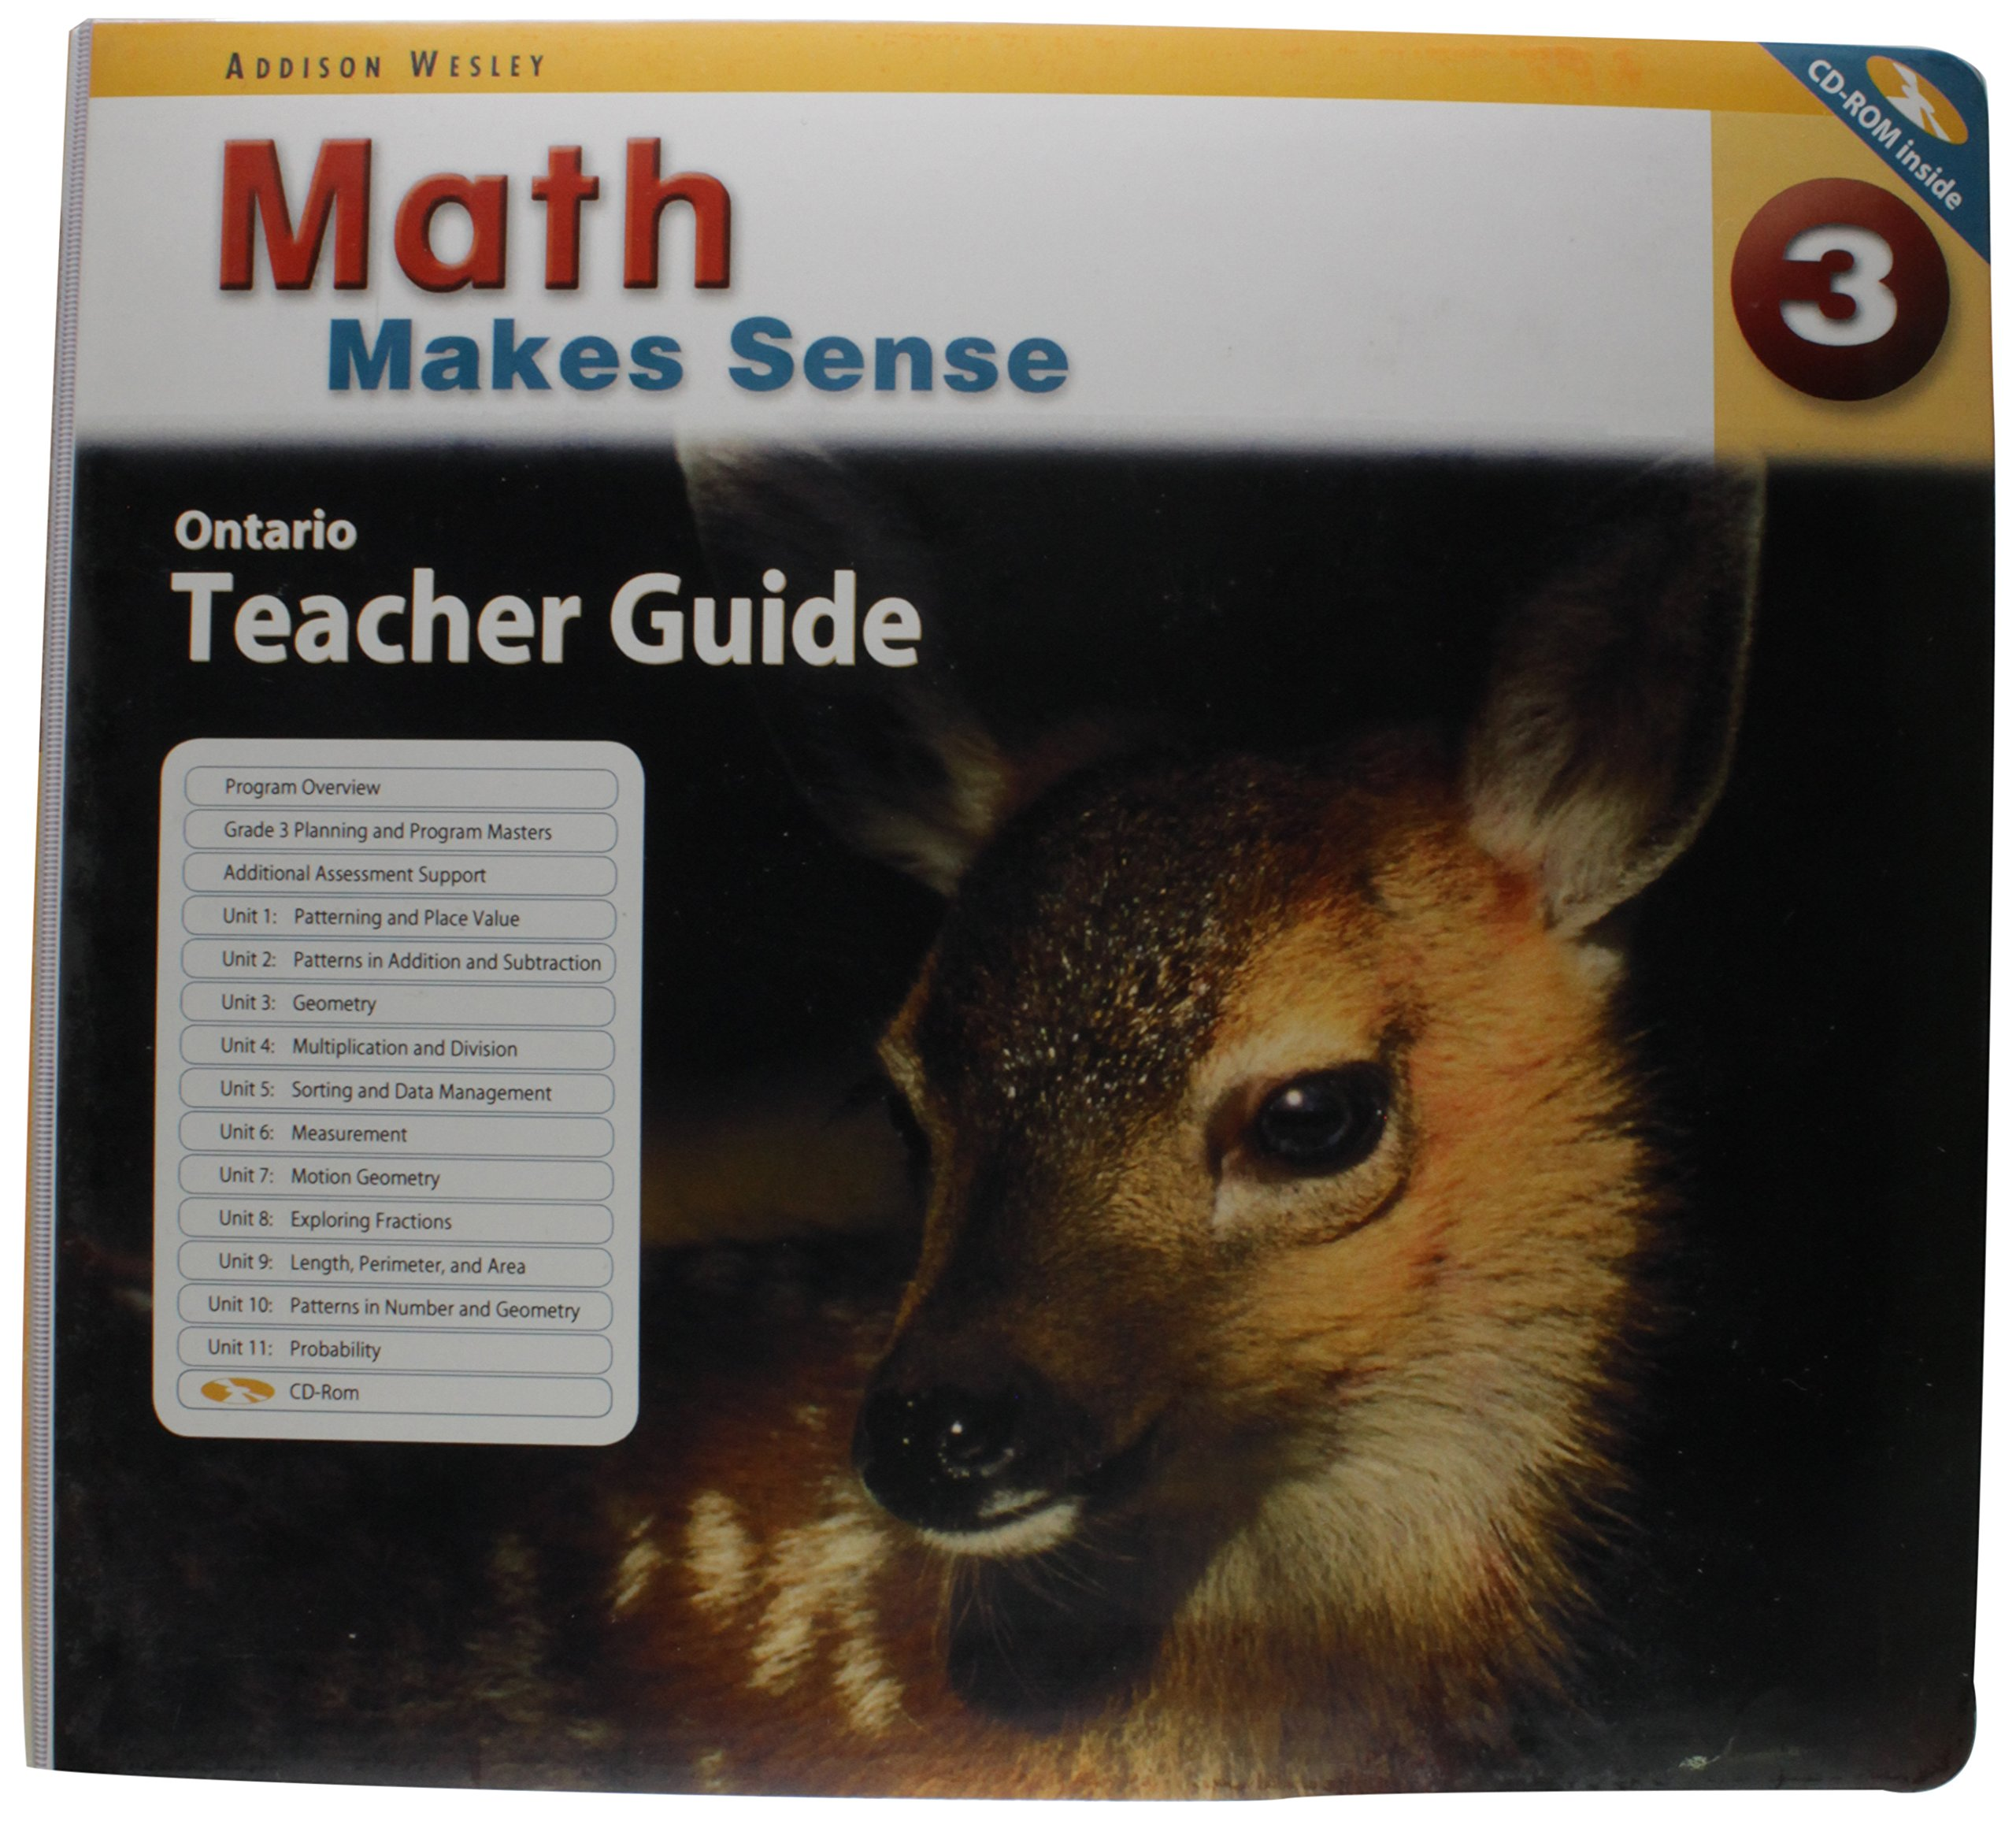 math makes sense 3 teacher s guide cd rom ontario edition rh amazon ca math makes sense grade 5 teacher guide pdf math makes sense 5 teacher guide